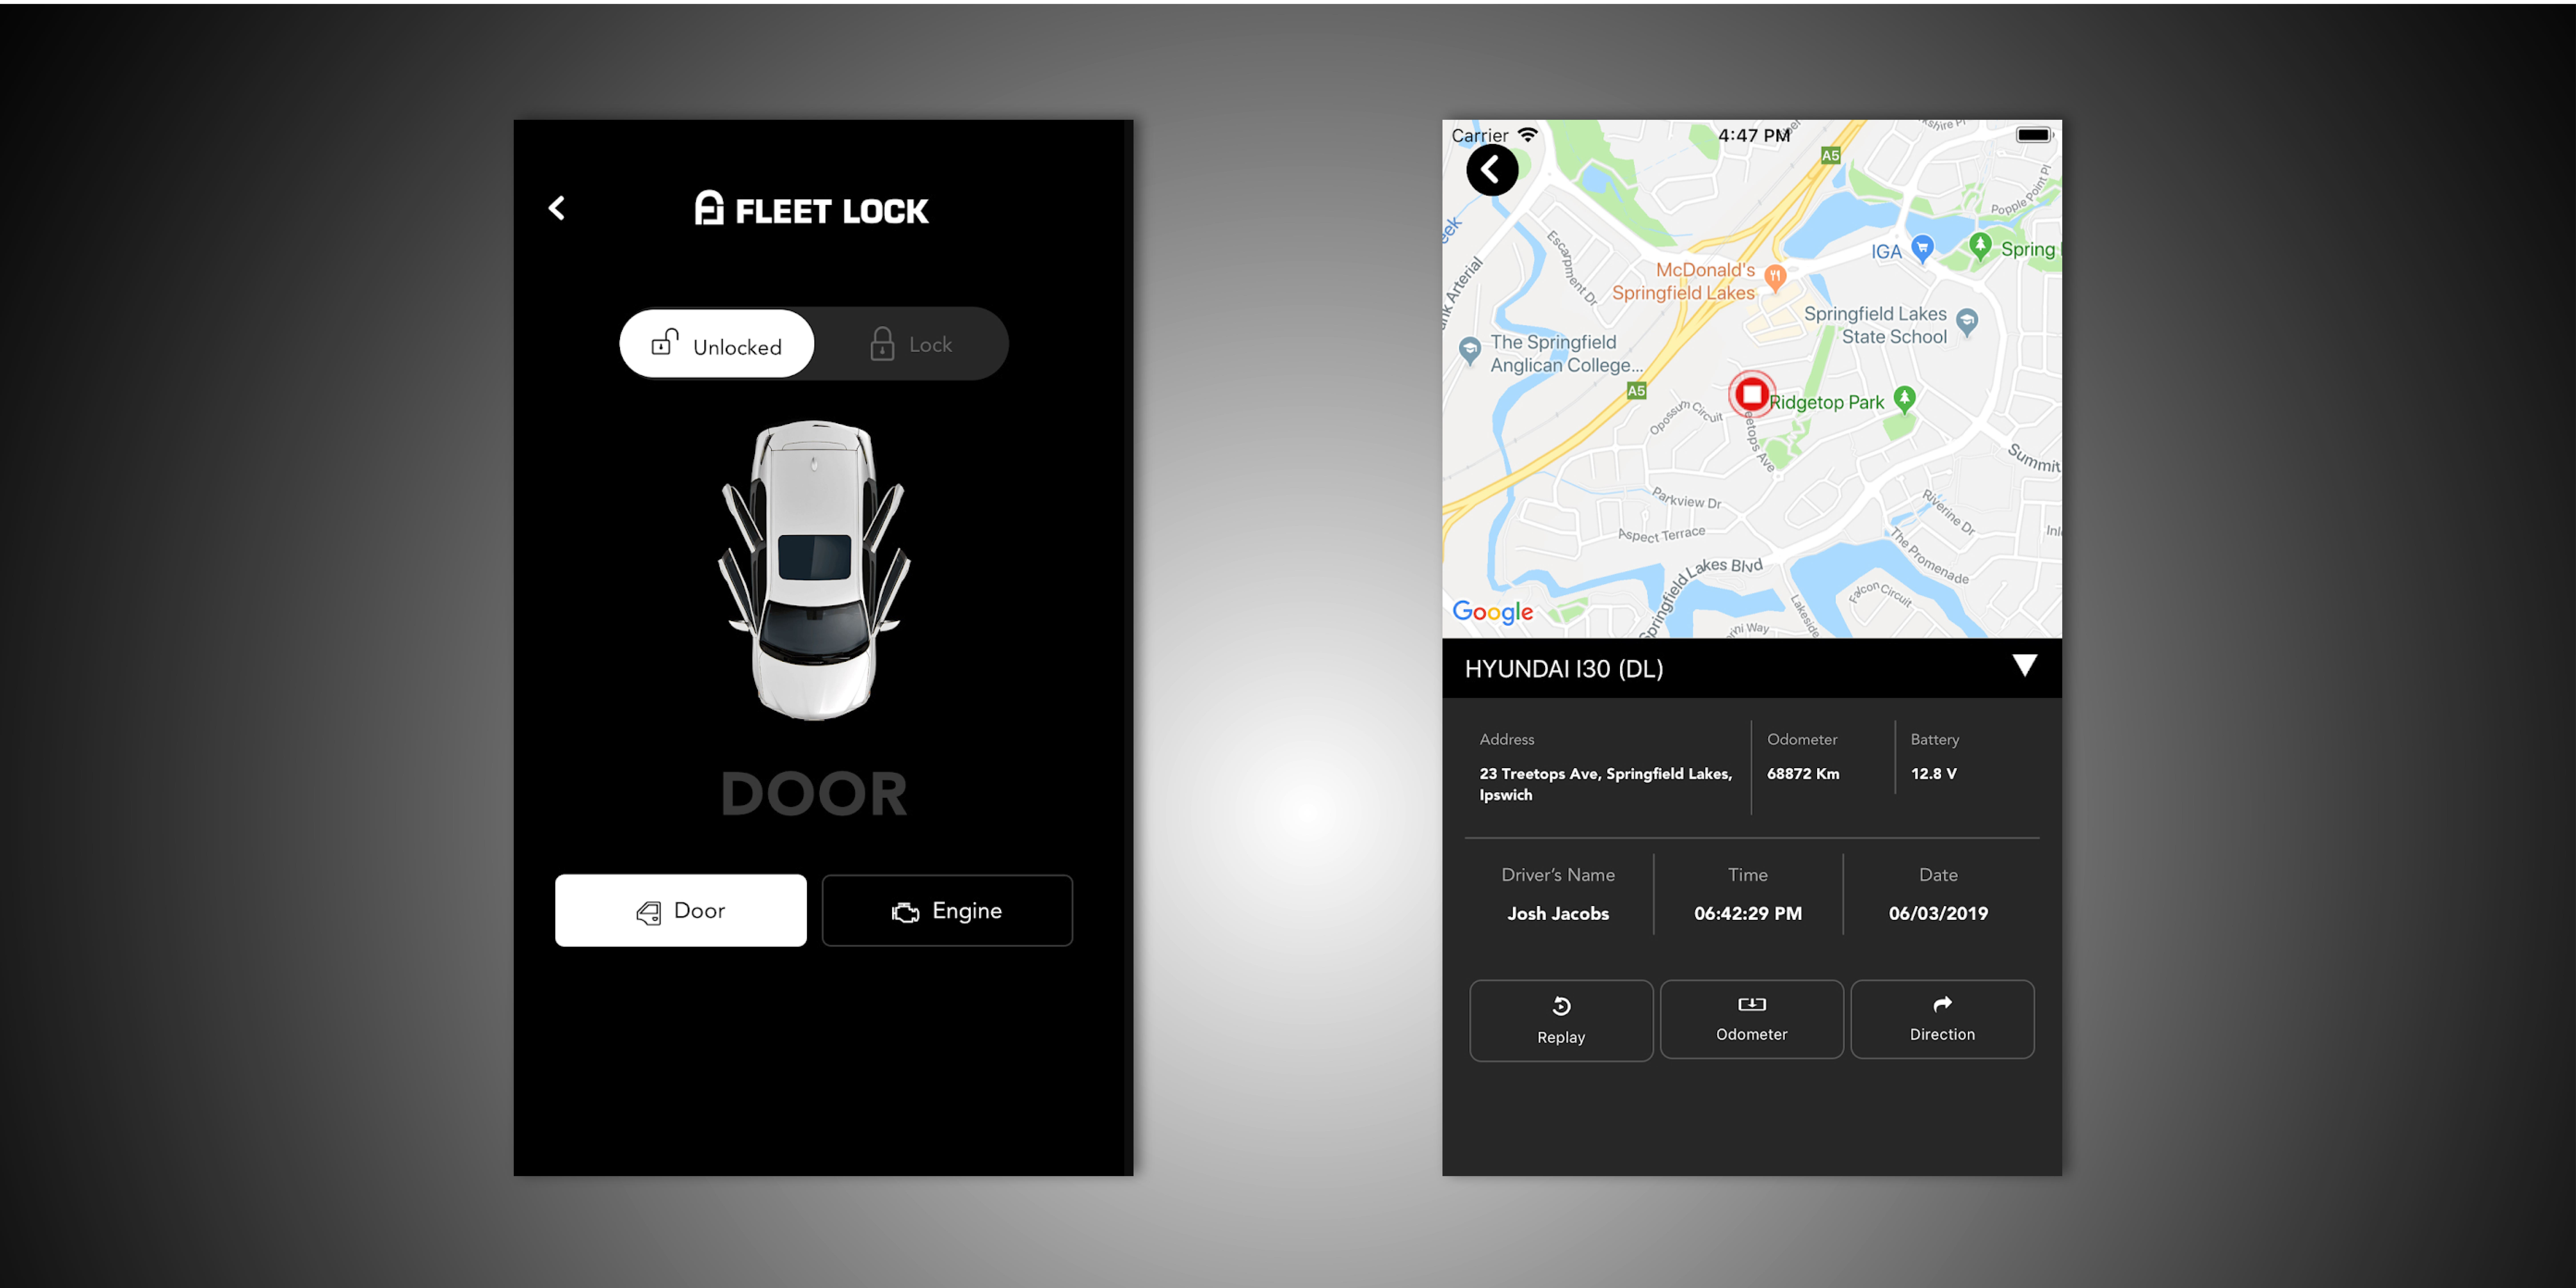 Uber Type apps In Android And IOS